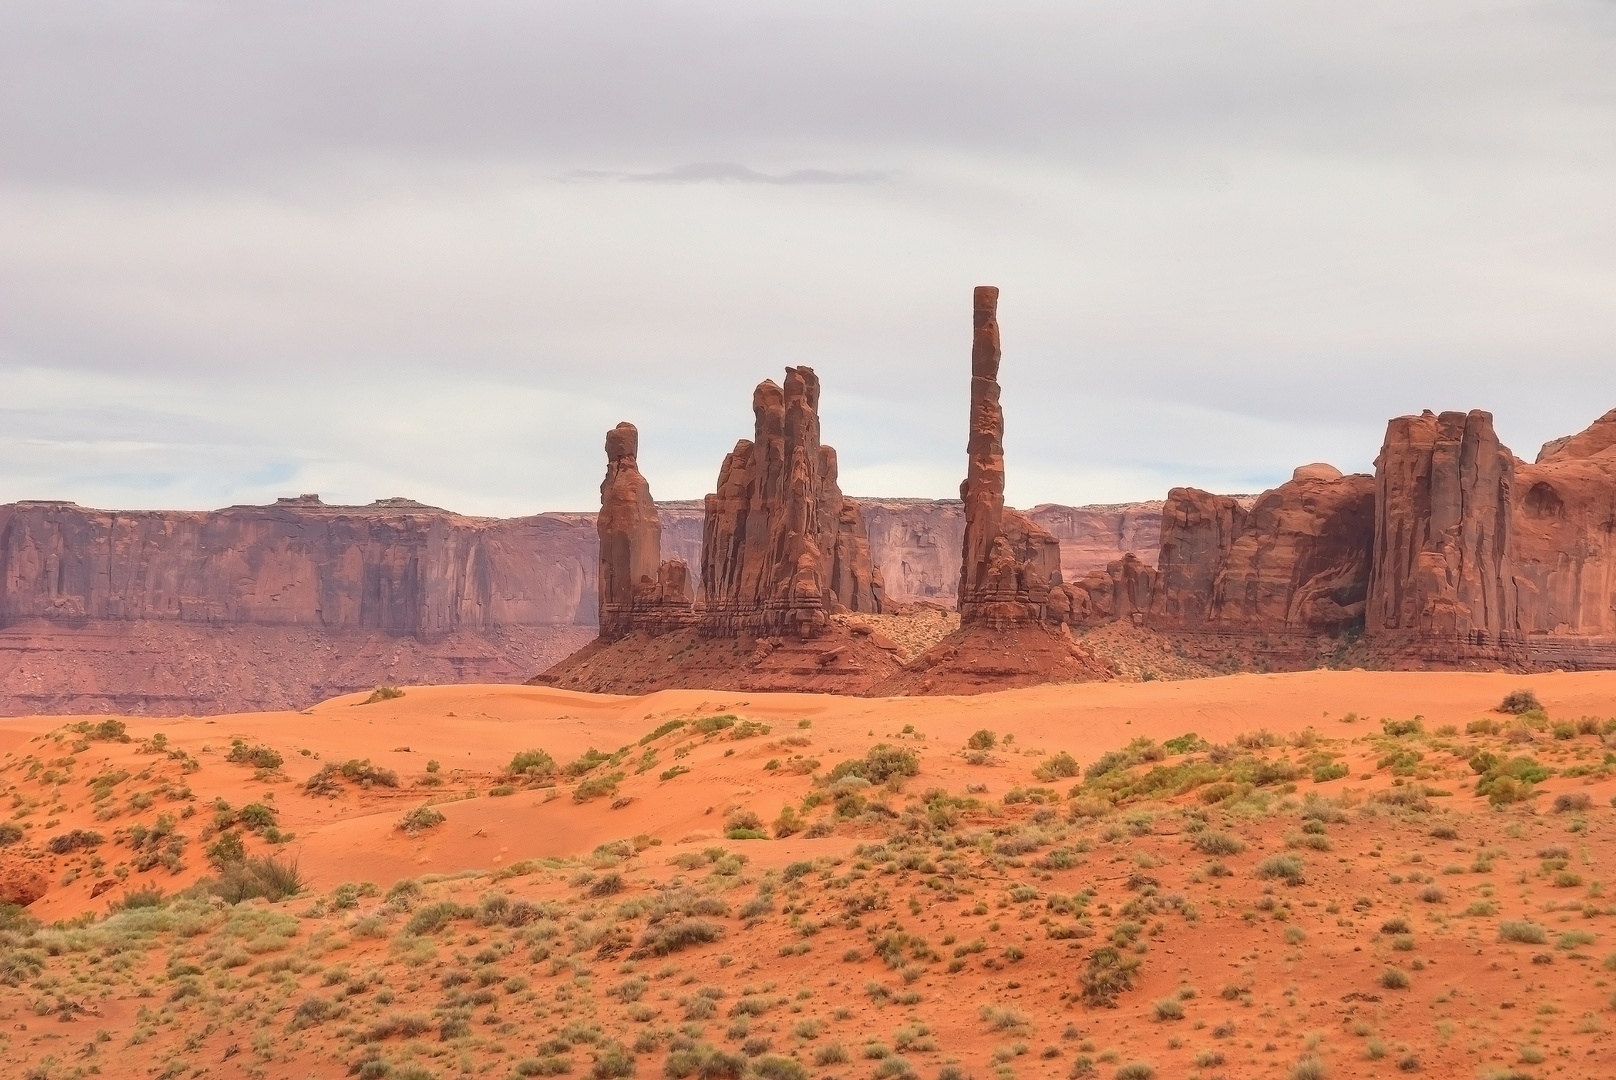 Totem Pole formation in Monument Valley Navajo Tribal Park